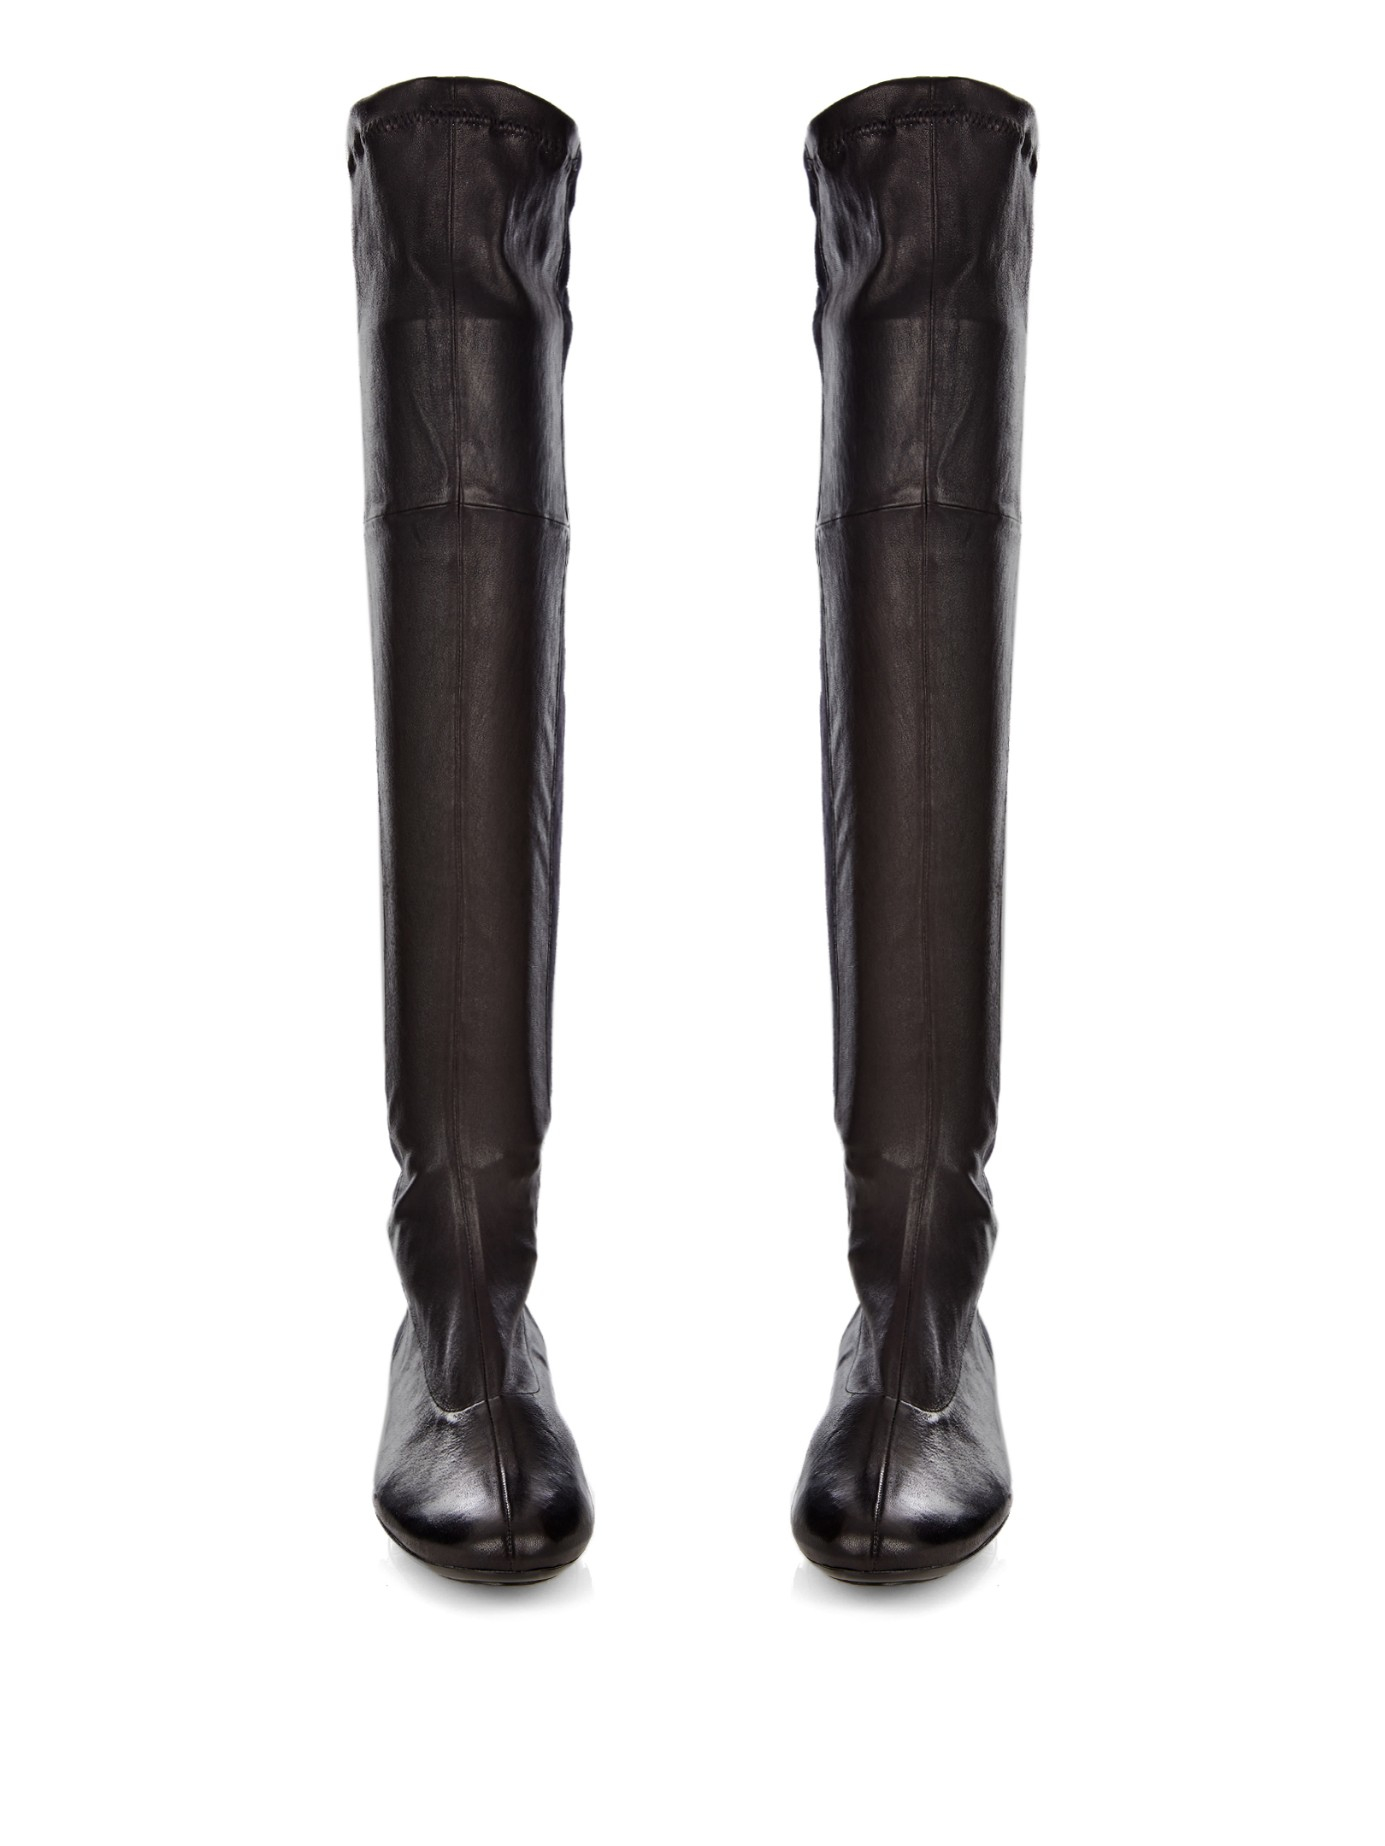 Robert Clergerie Leather Knee Boots wholesale price sale online outlet order clearance best seller MdtA9A2